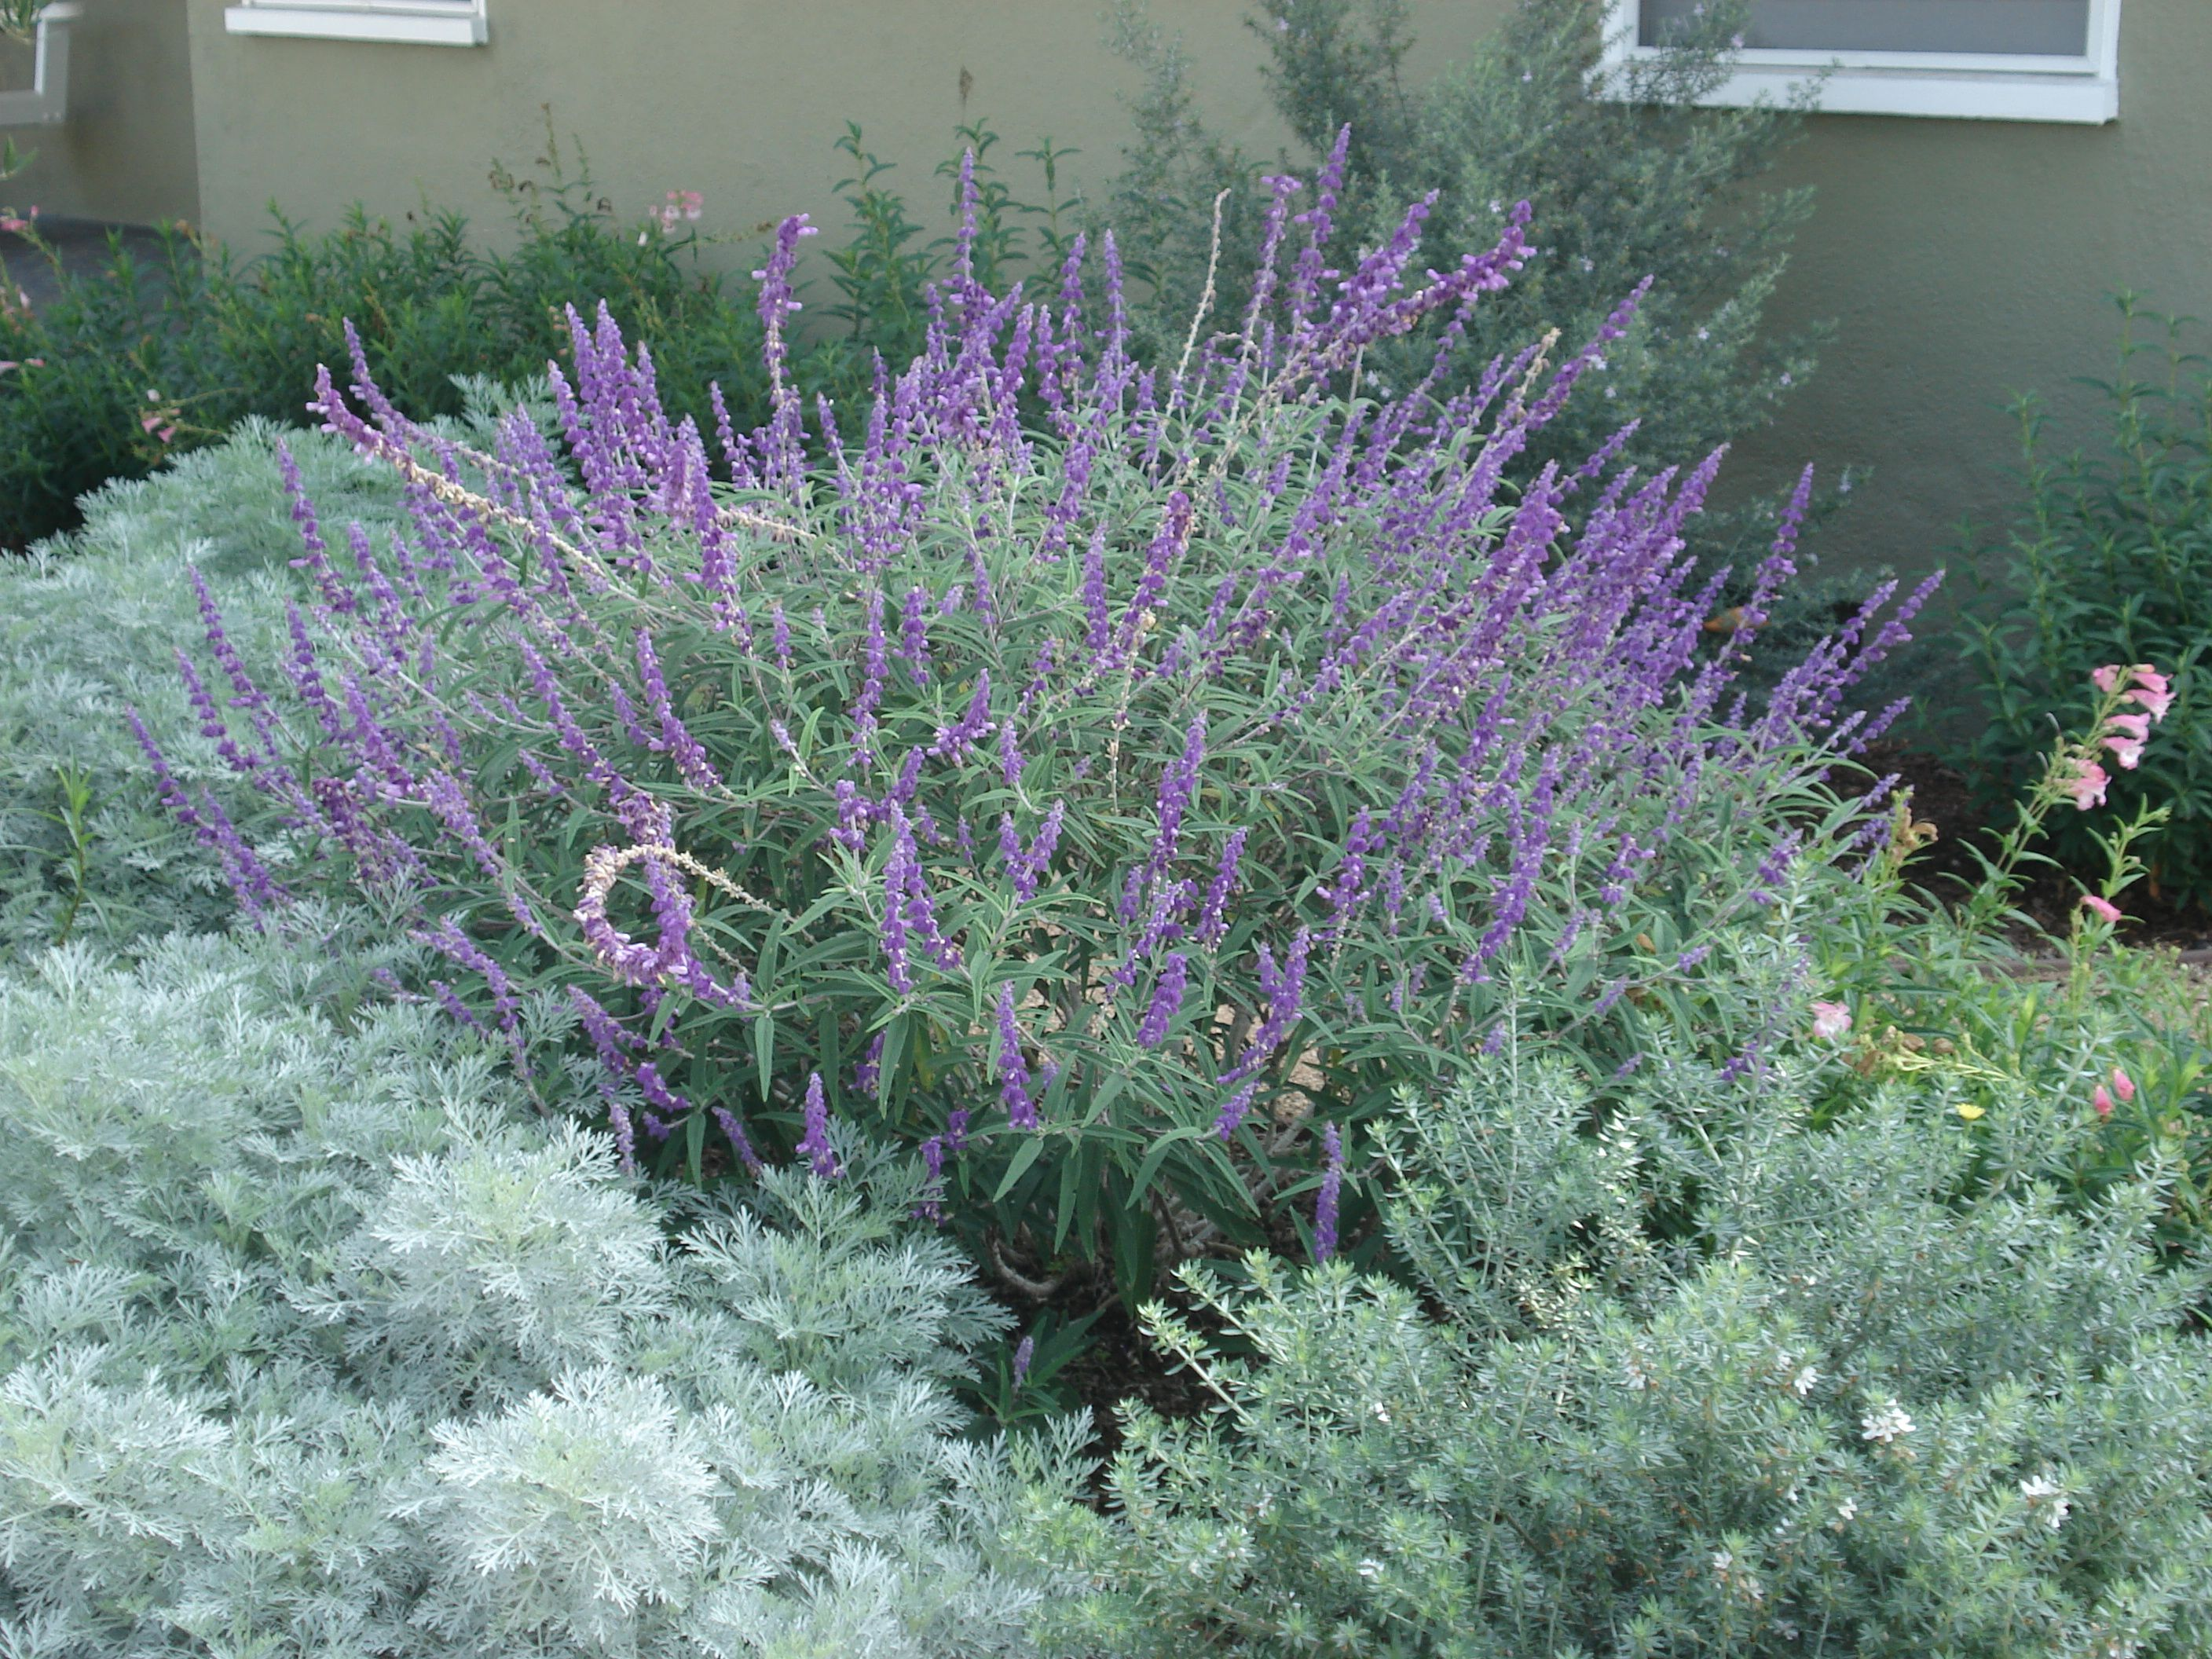 Landscaping with Lavender Plants | Native shrubs in the landscape ...